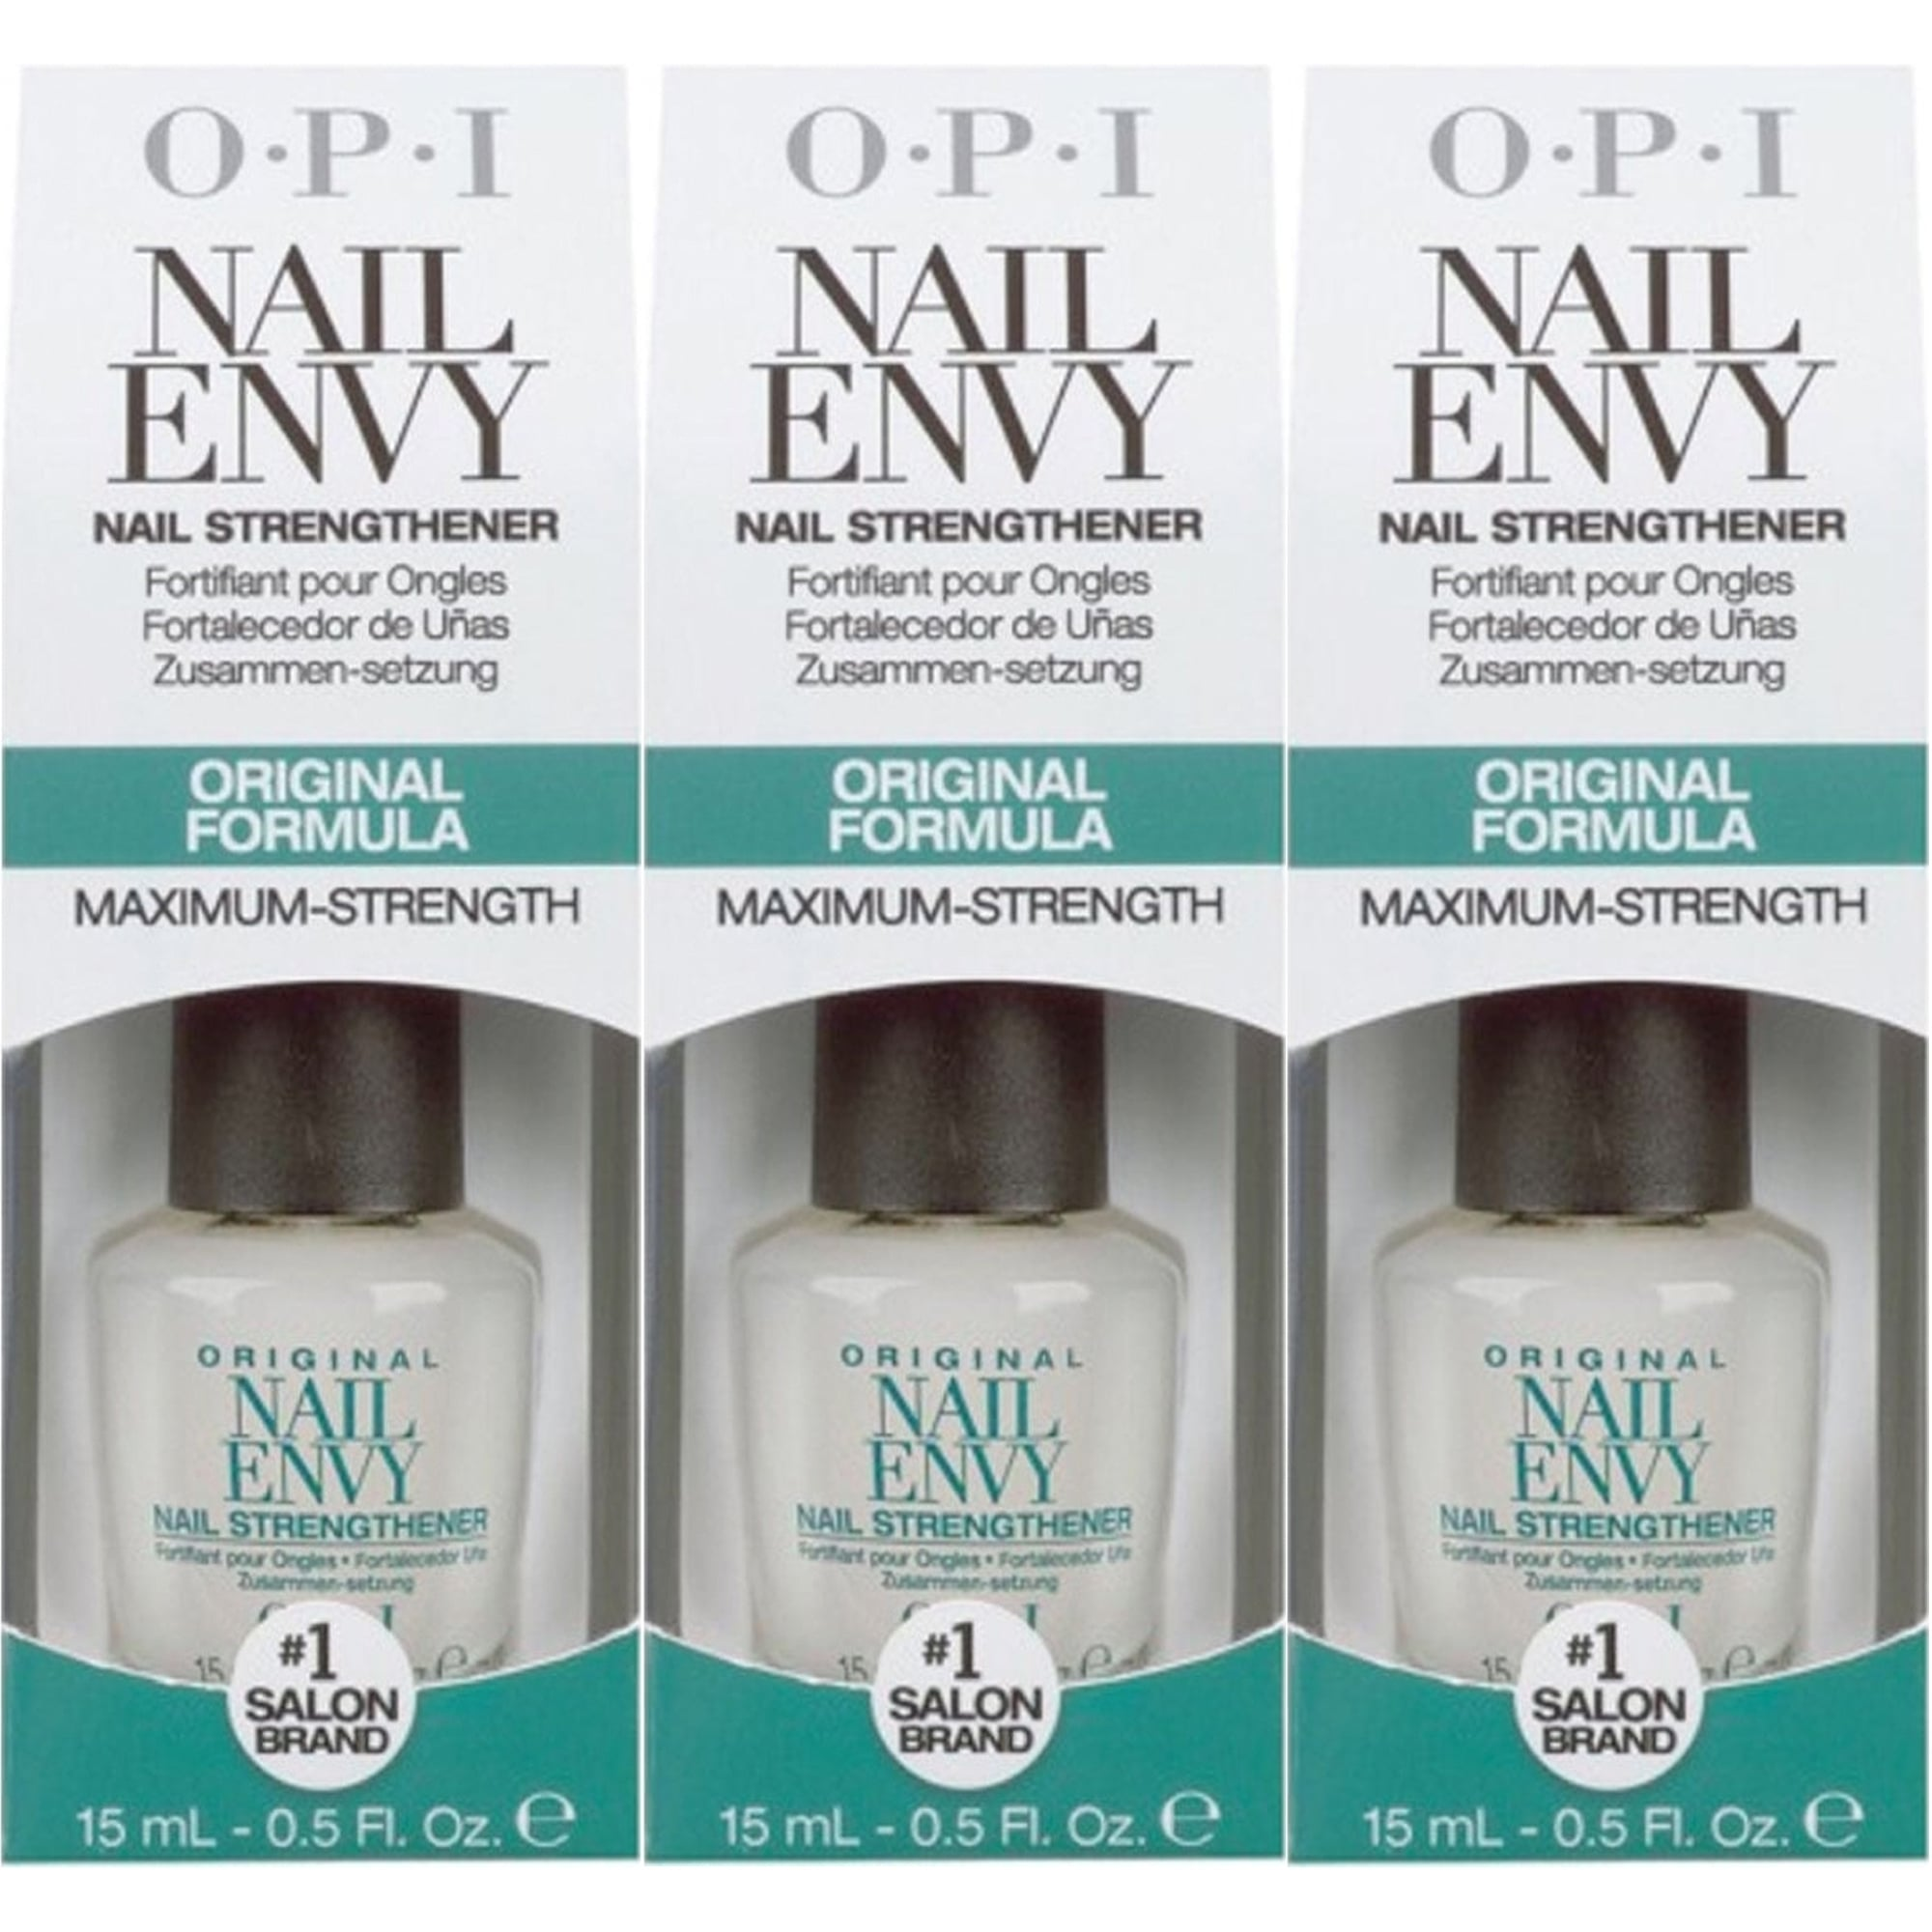 Nail Envy Nail Strengthener Original Formula (Maximum Strength) 3x15ML